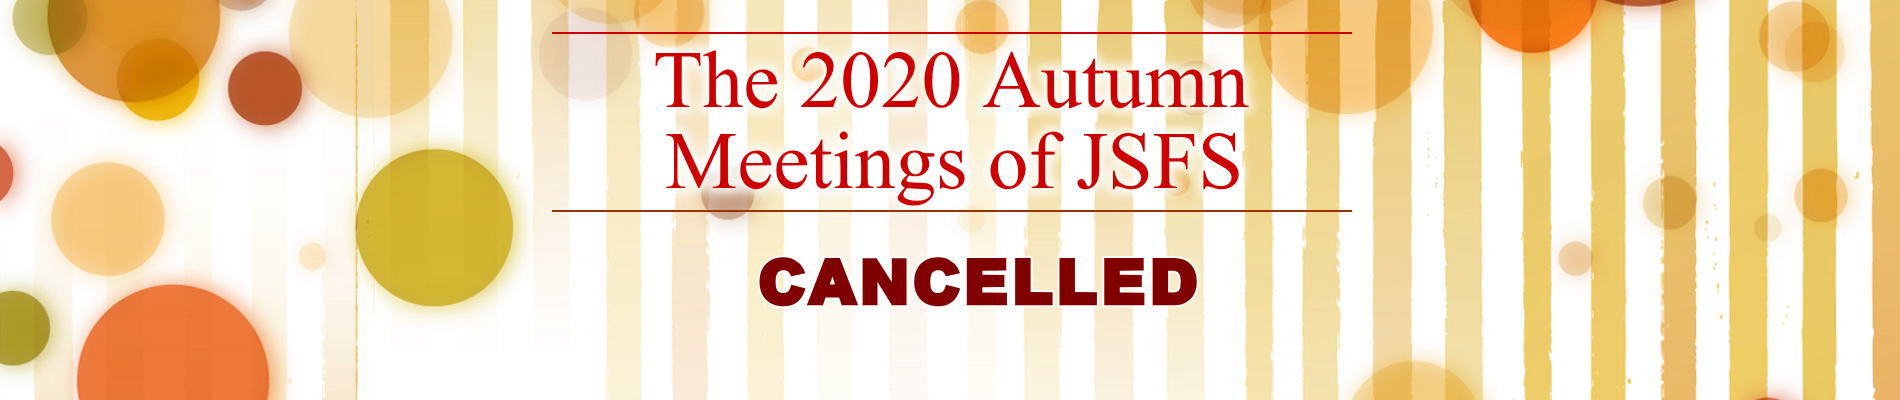 The 2020 Autumn Meetings of JSFS